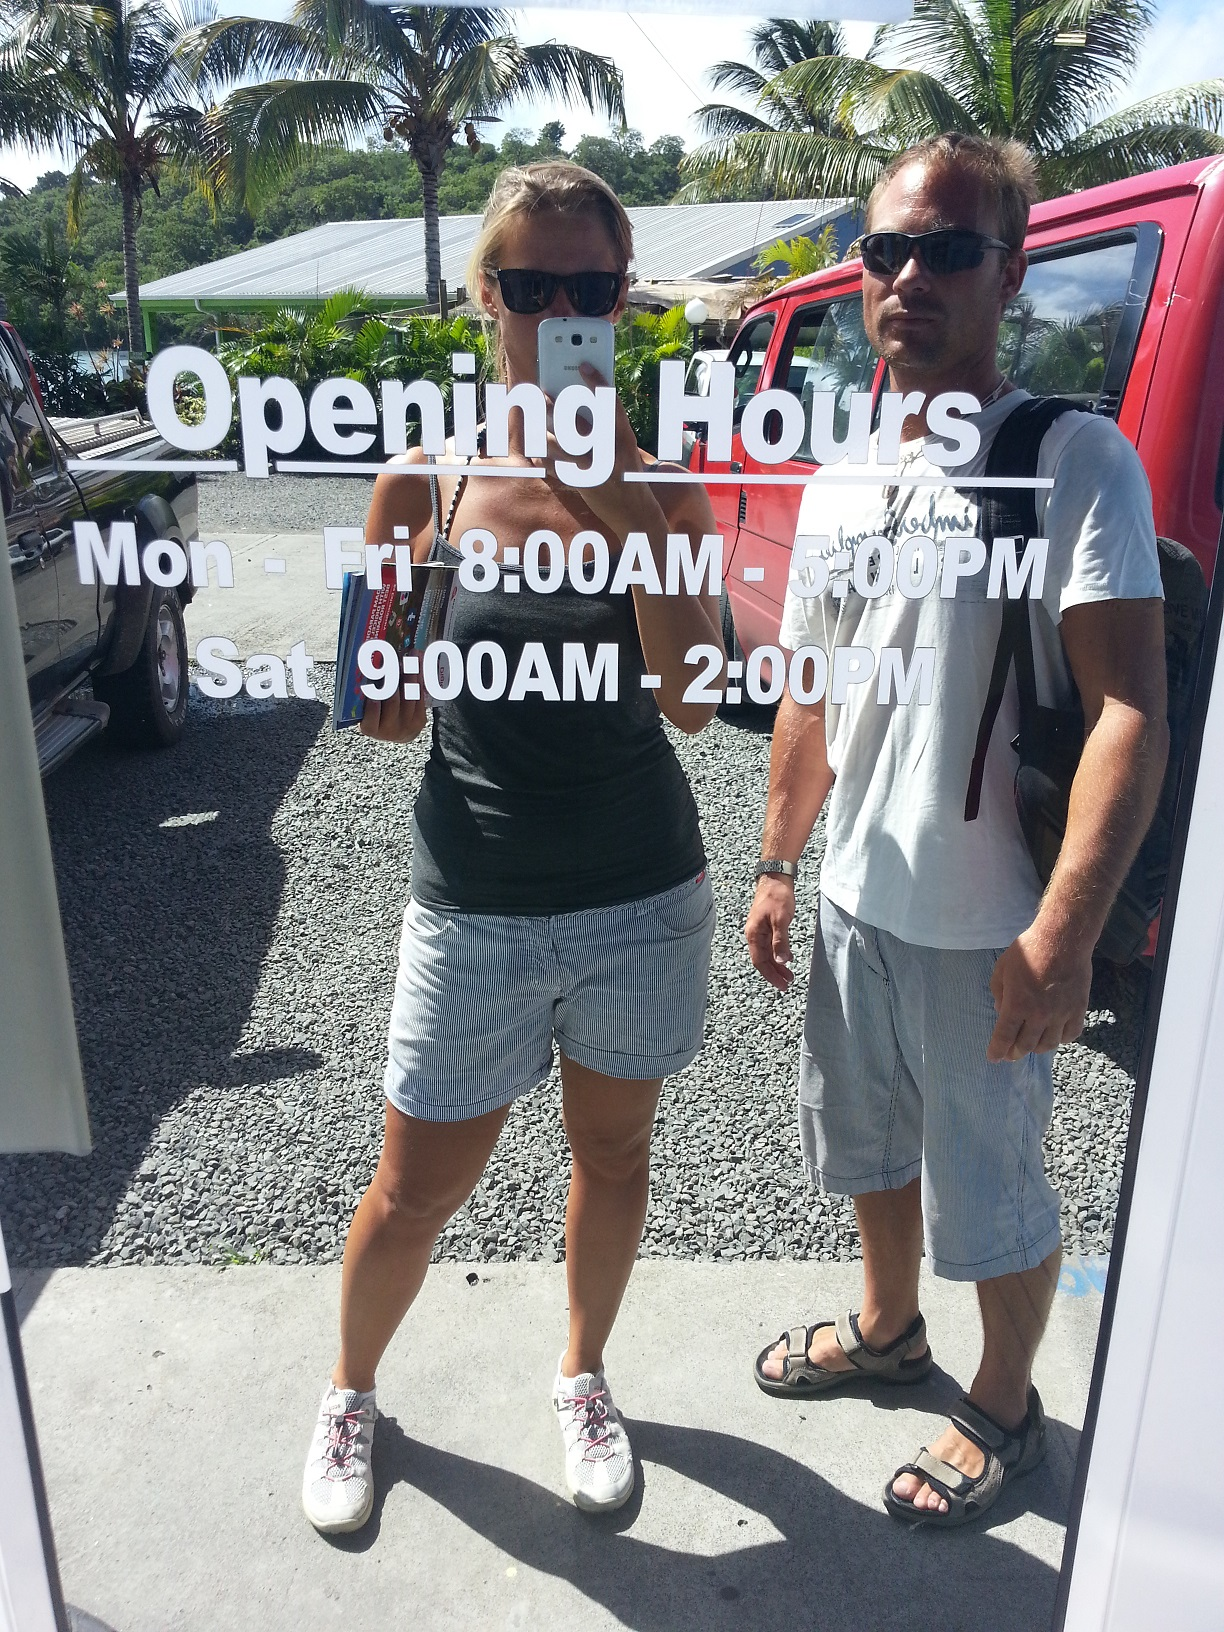 Salty sailors checking out the opening hours. When can we spend our money?